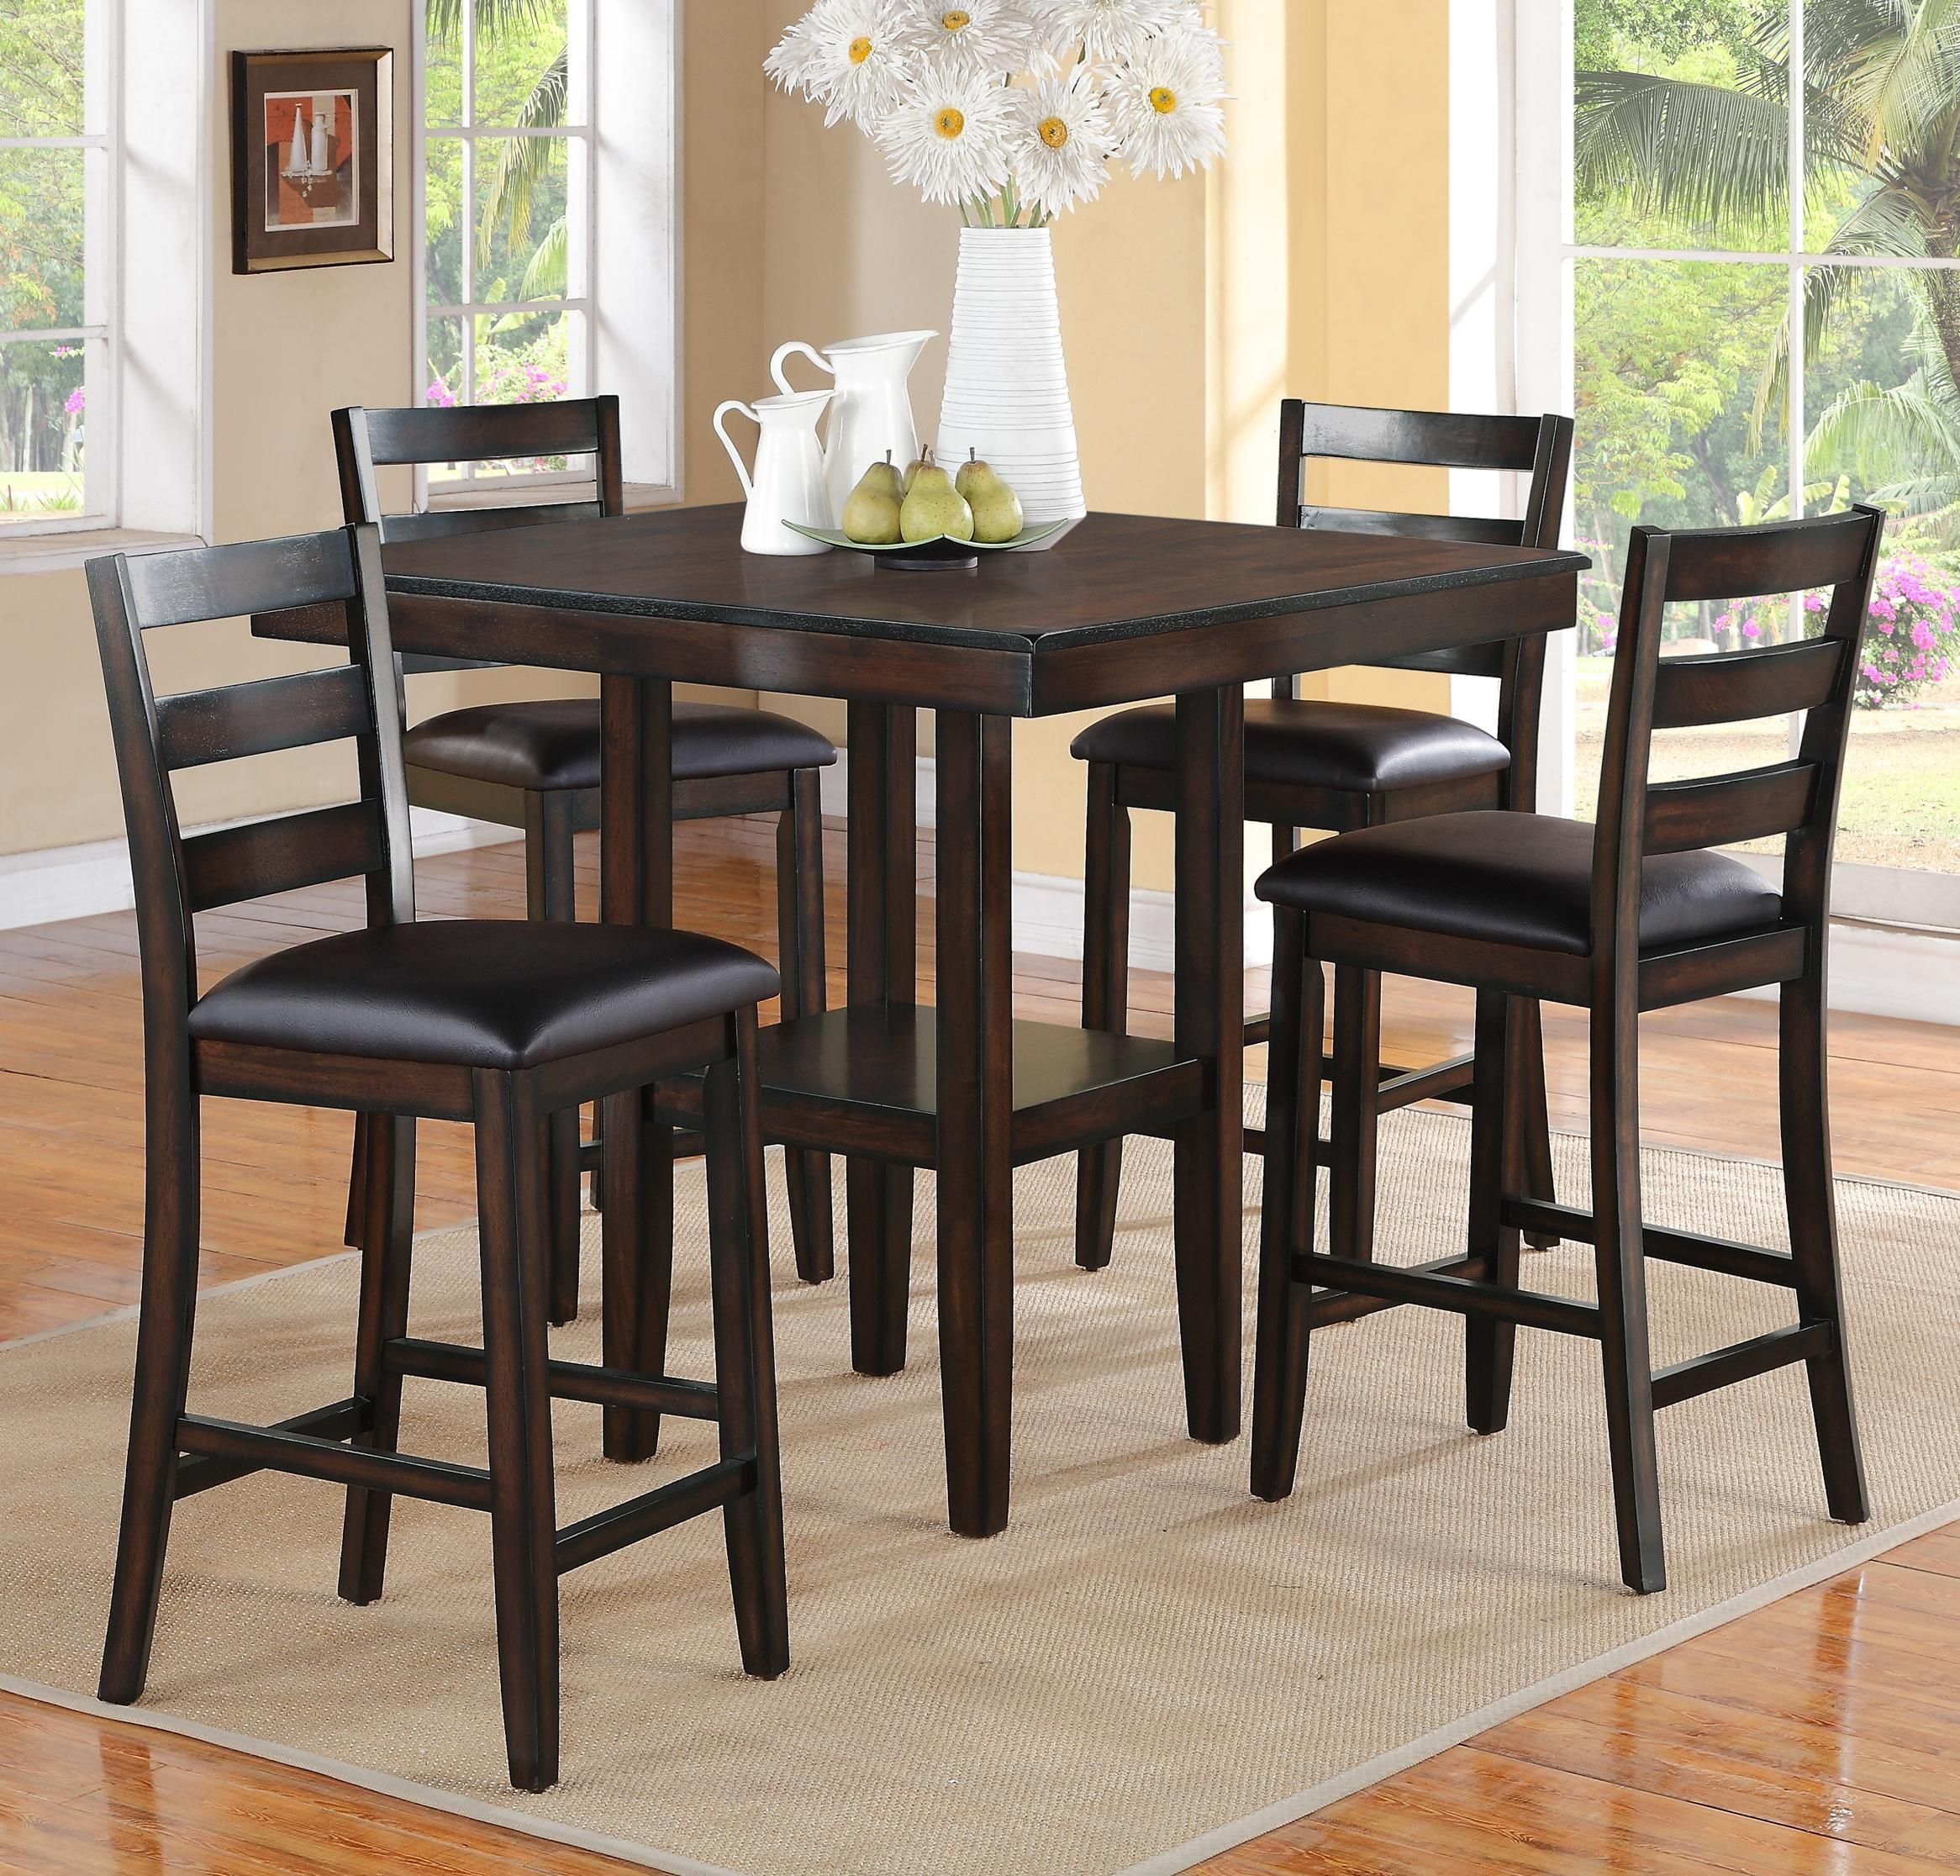 Tahoe 5 Piece Counter Height Table And Chairs Set By Crown Mark At